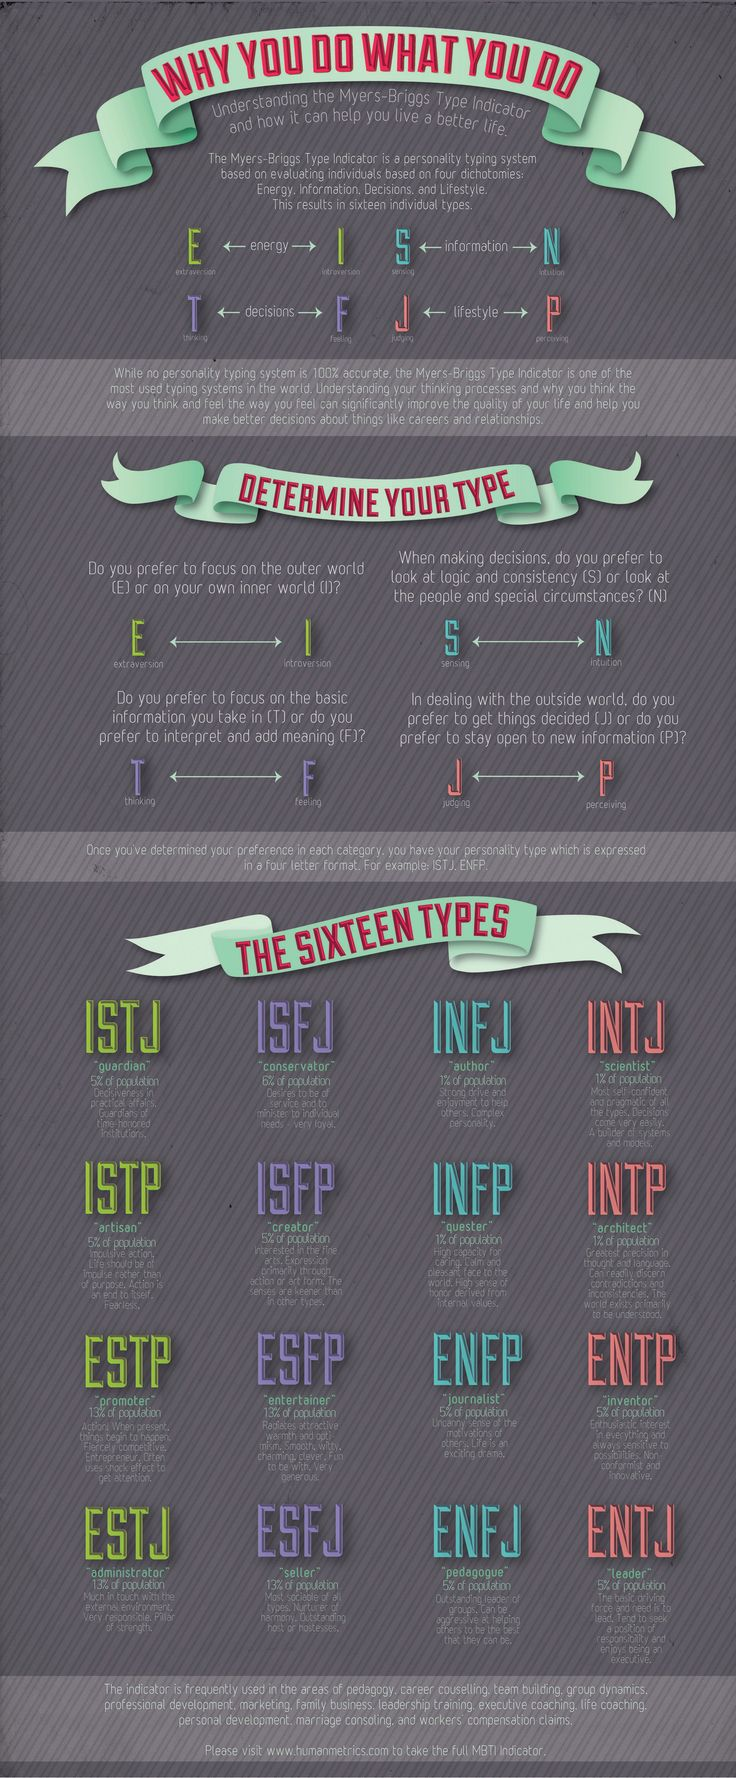 Why You Do What You Do is an infographic on the basics of the Myers-Briggs Type Indicator, a personality test.